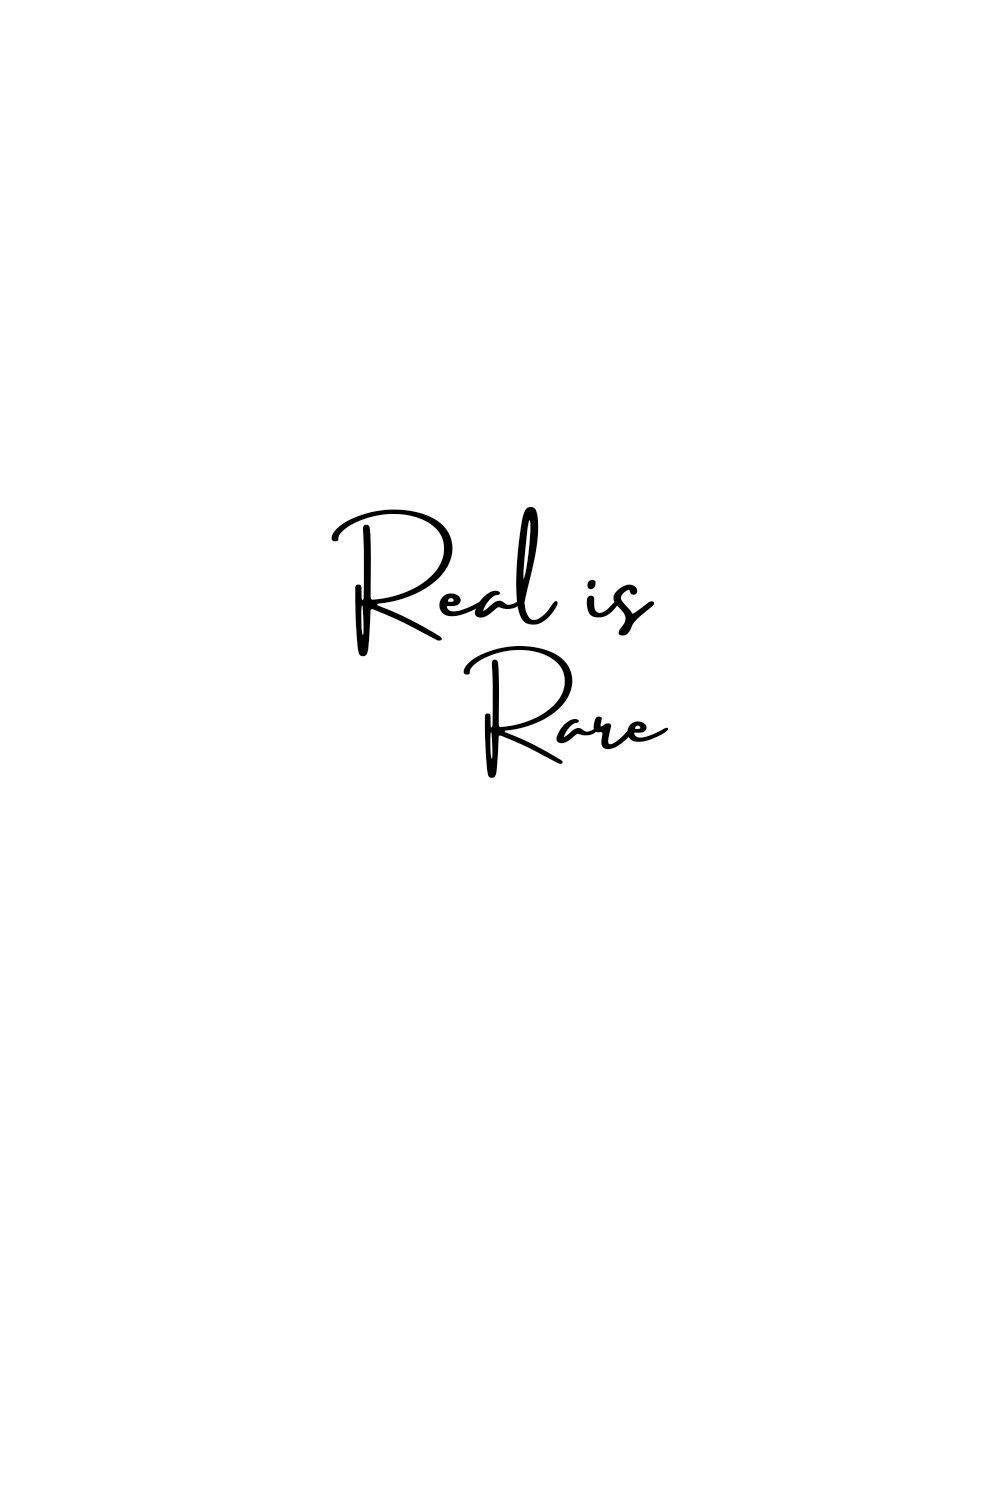 Real is Rare quote Rare quote White background quotes Quotes white 1000x1500